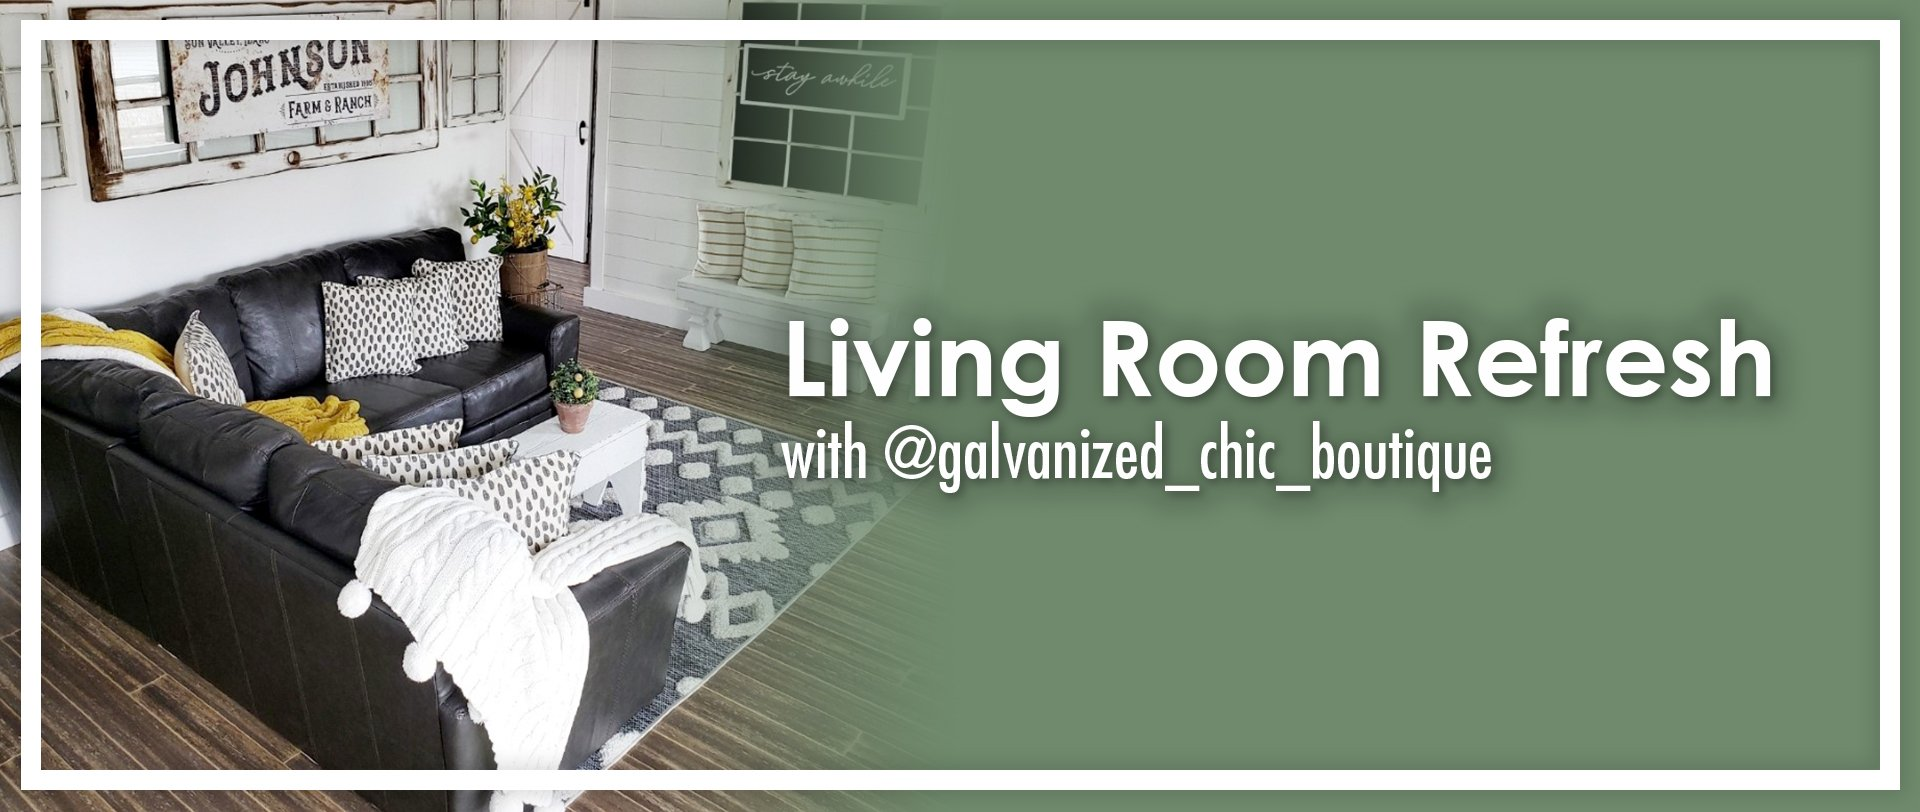 Living Room Refresh With @galvanized_chic_boutique